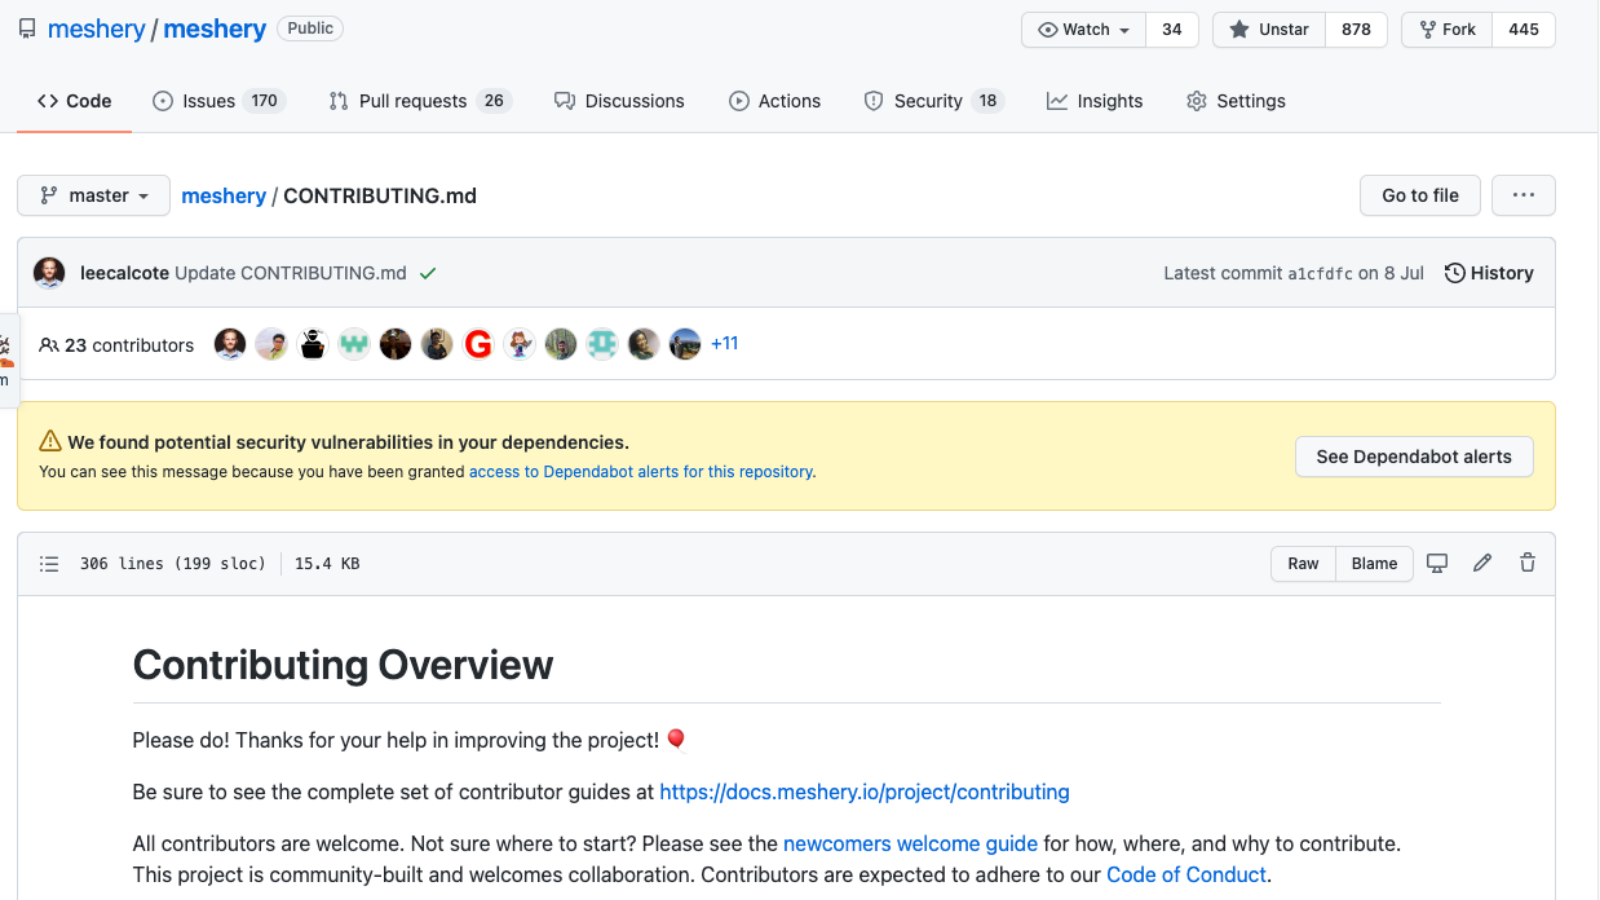 A screenshot showing the contributing guide of the Meshery project in GitHub.